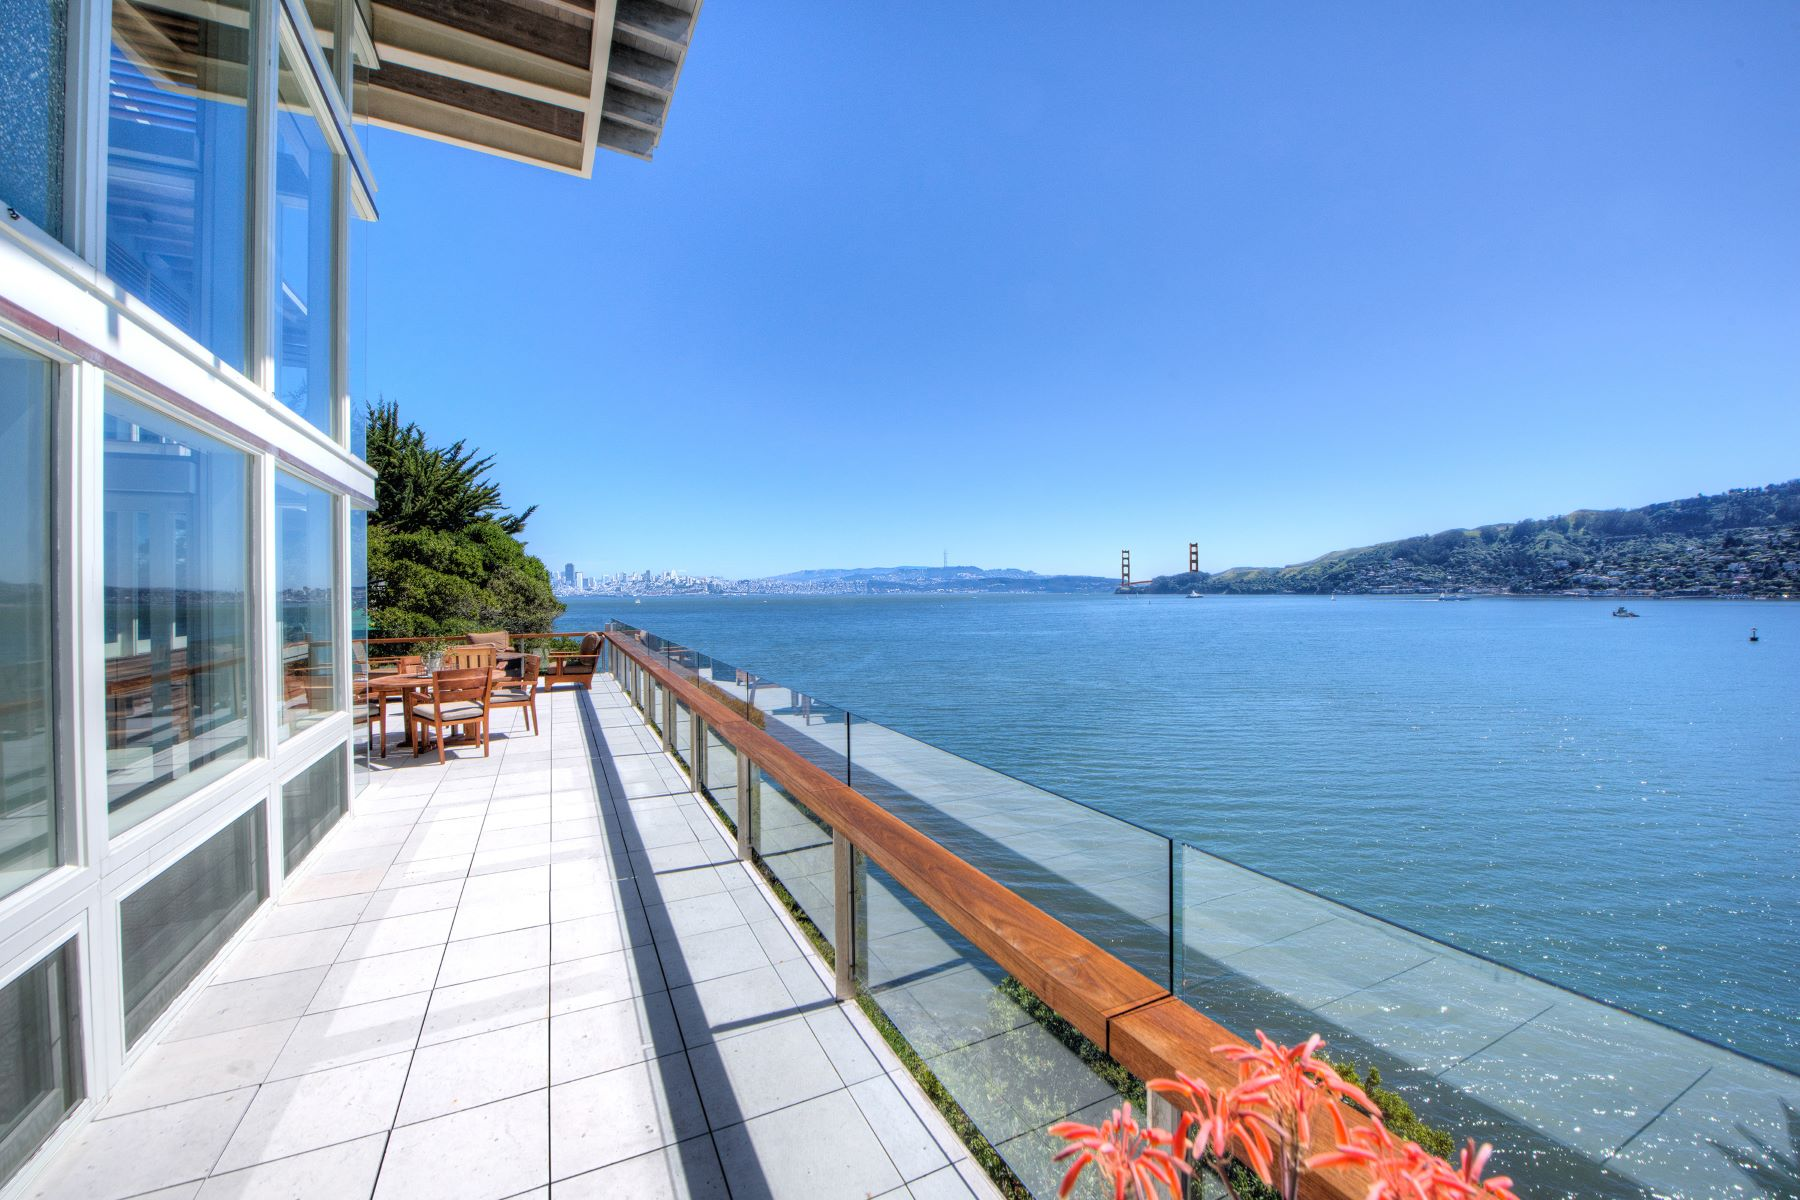 Additional photo for property listing at Cliffside Contemporary 8 Cliff Road Belvedere, California 94920 Estados Unidos